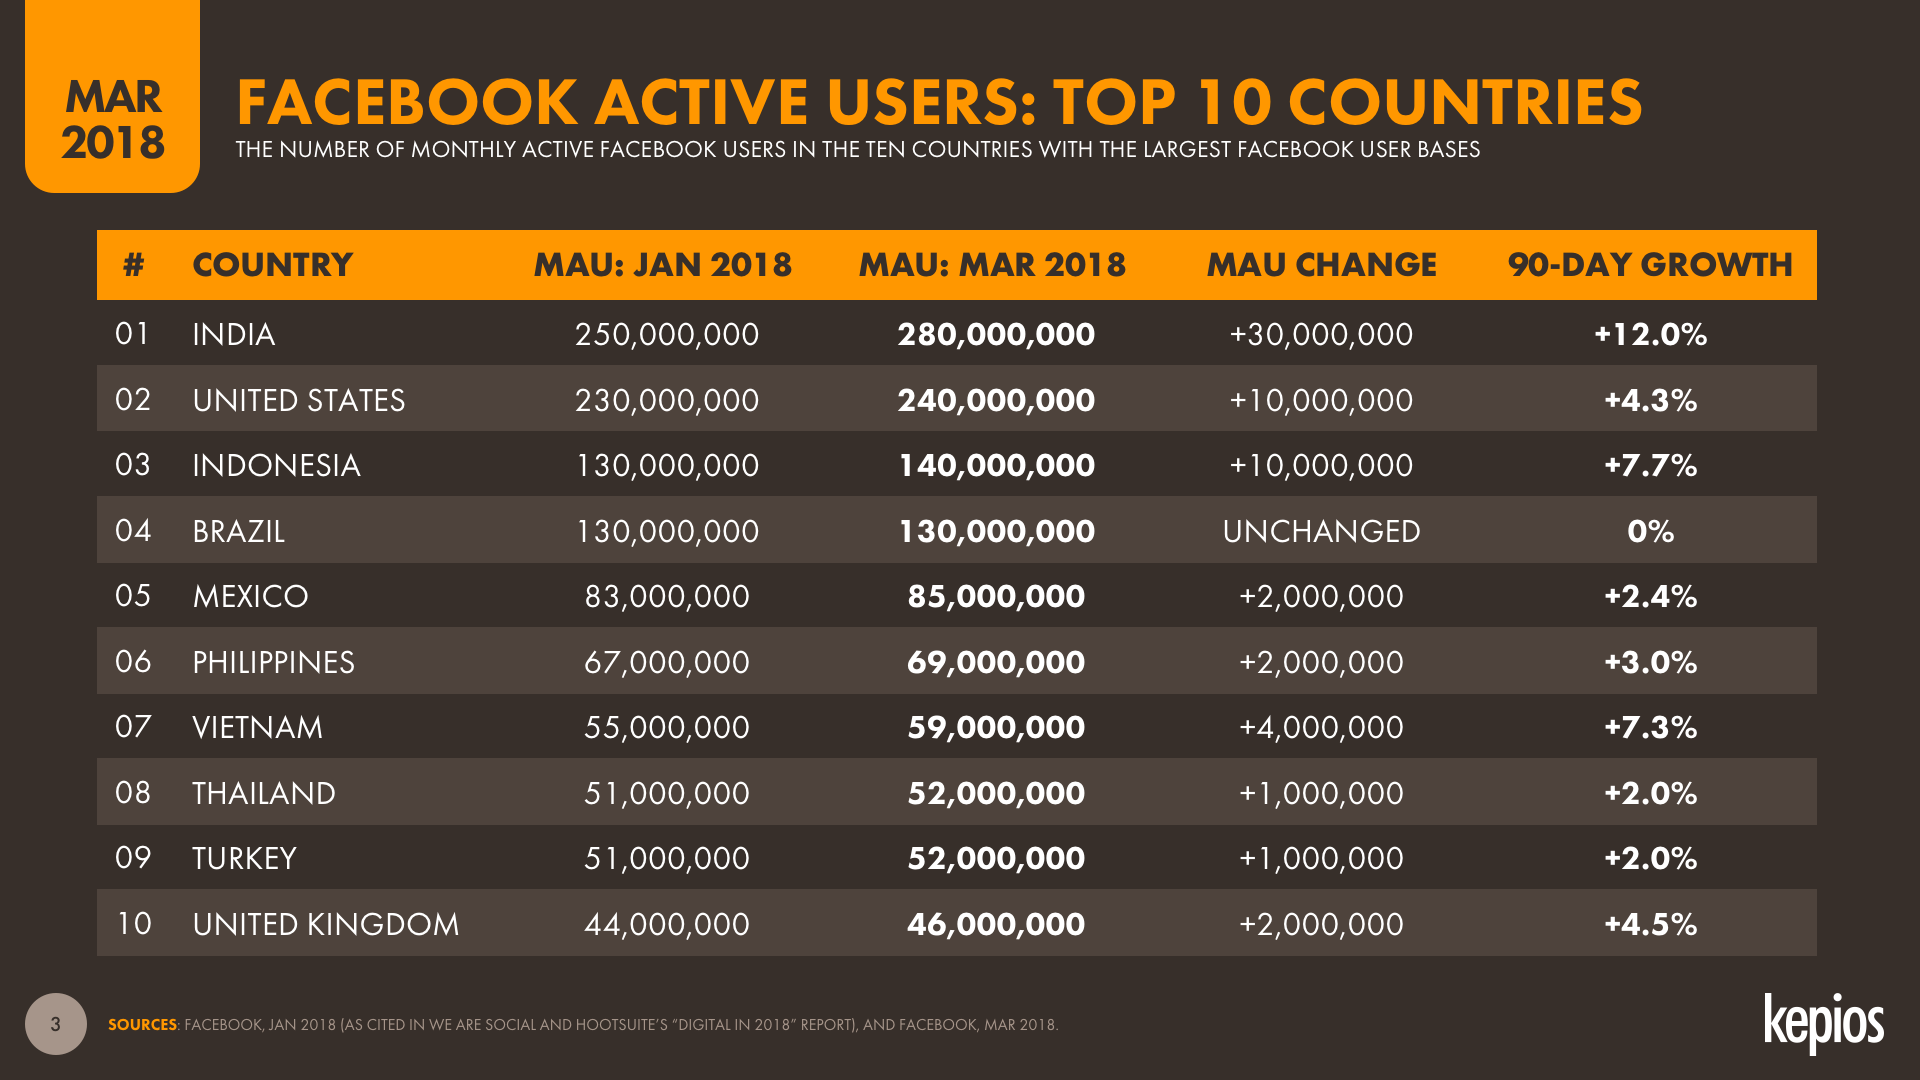 Facebook MAU by Country, March 2018